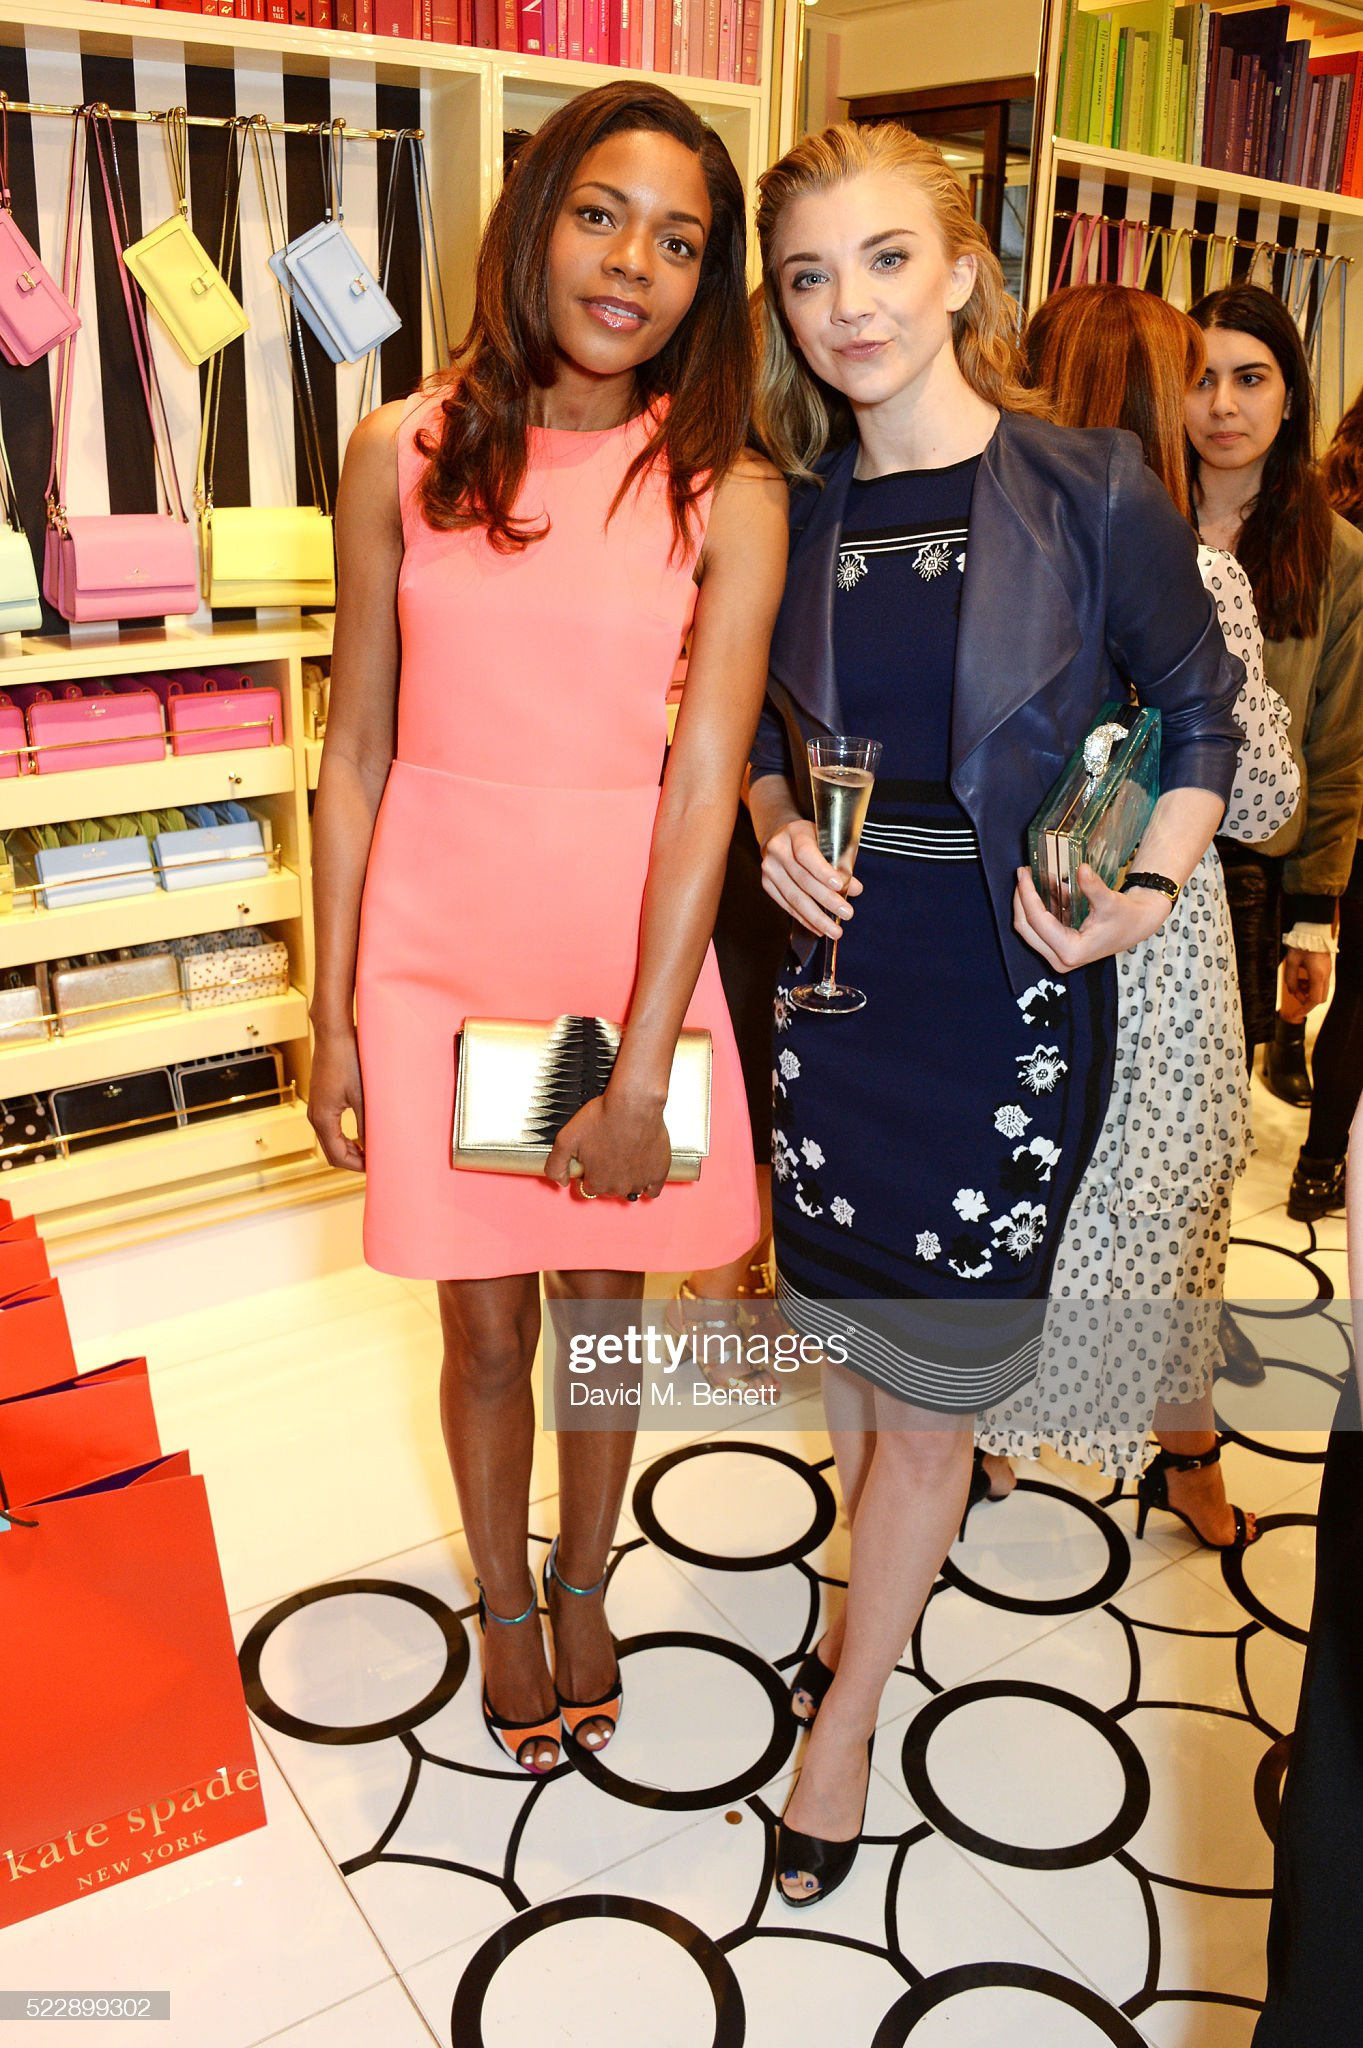 ¿Cuánto mide Naomie Harris? - Real height Naomie-harris-and-natalie-dormer-attend-the-kate-spade-new-york-picture-id522899302?s=2048x2048